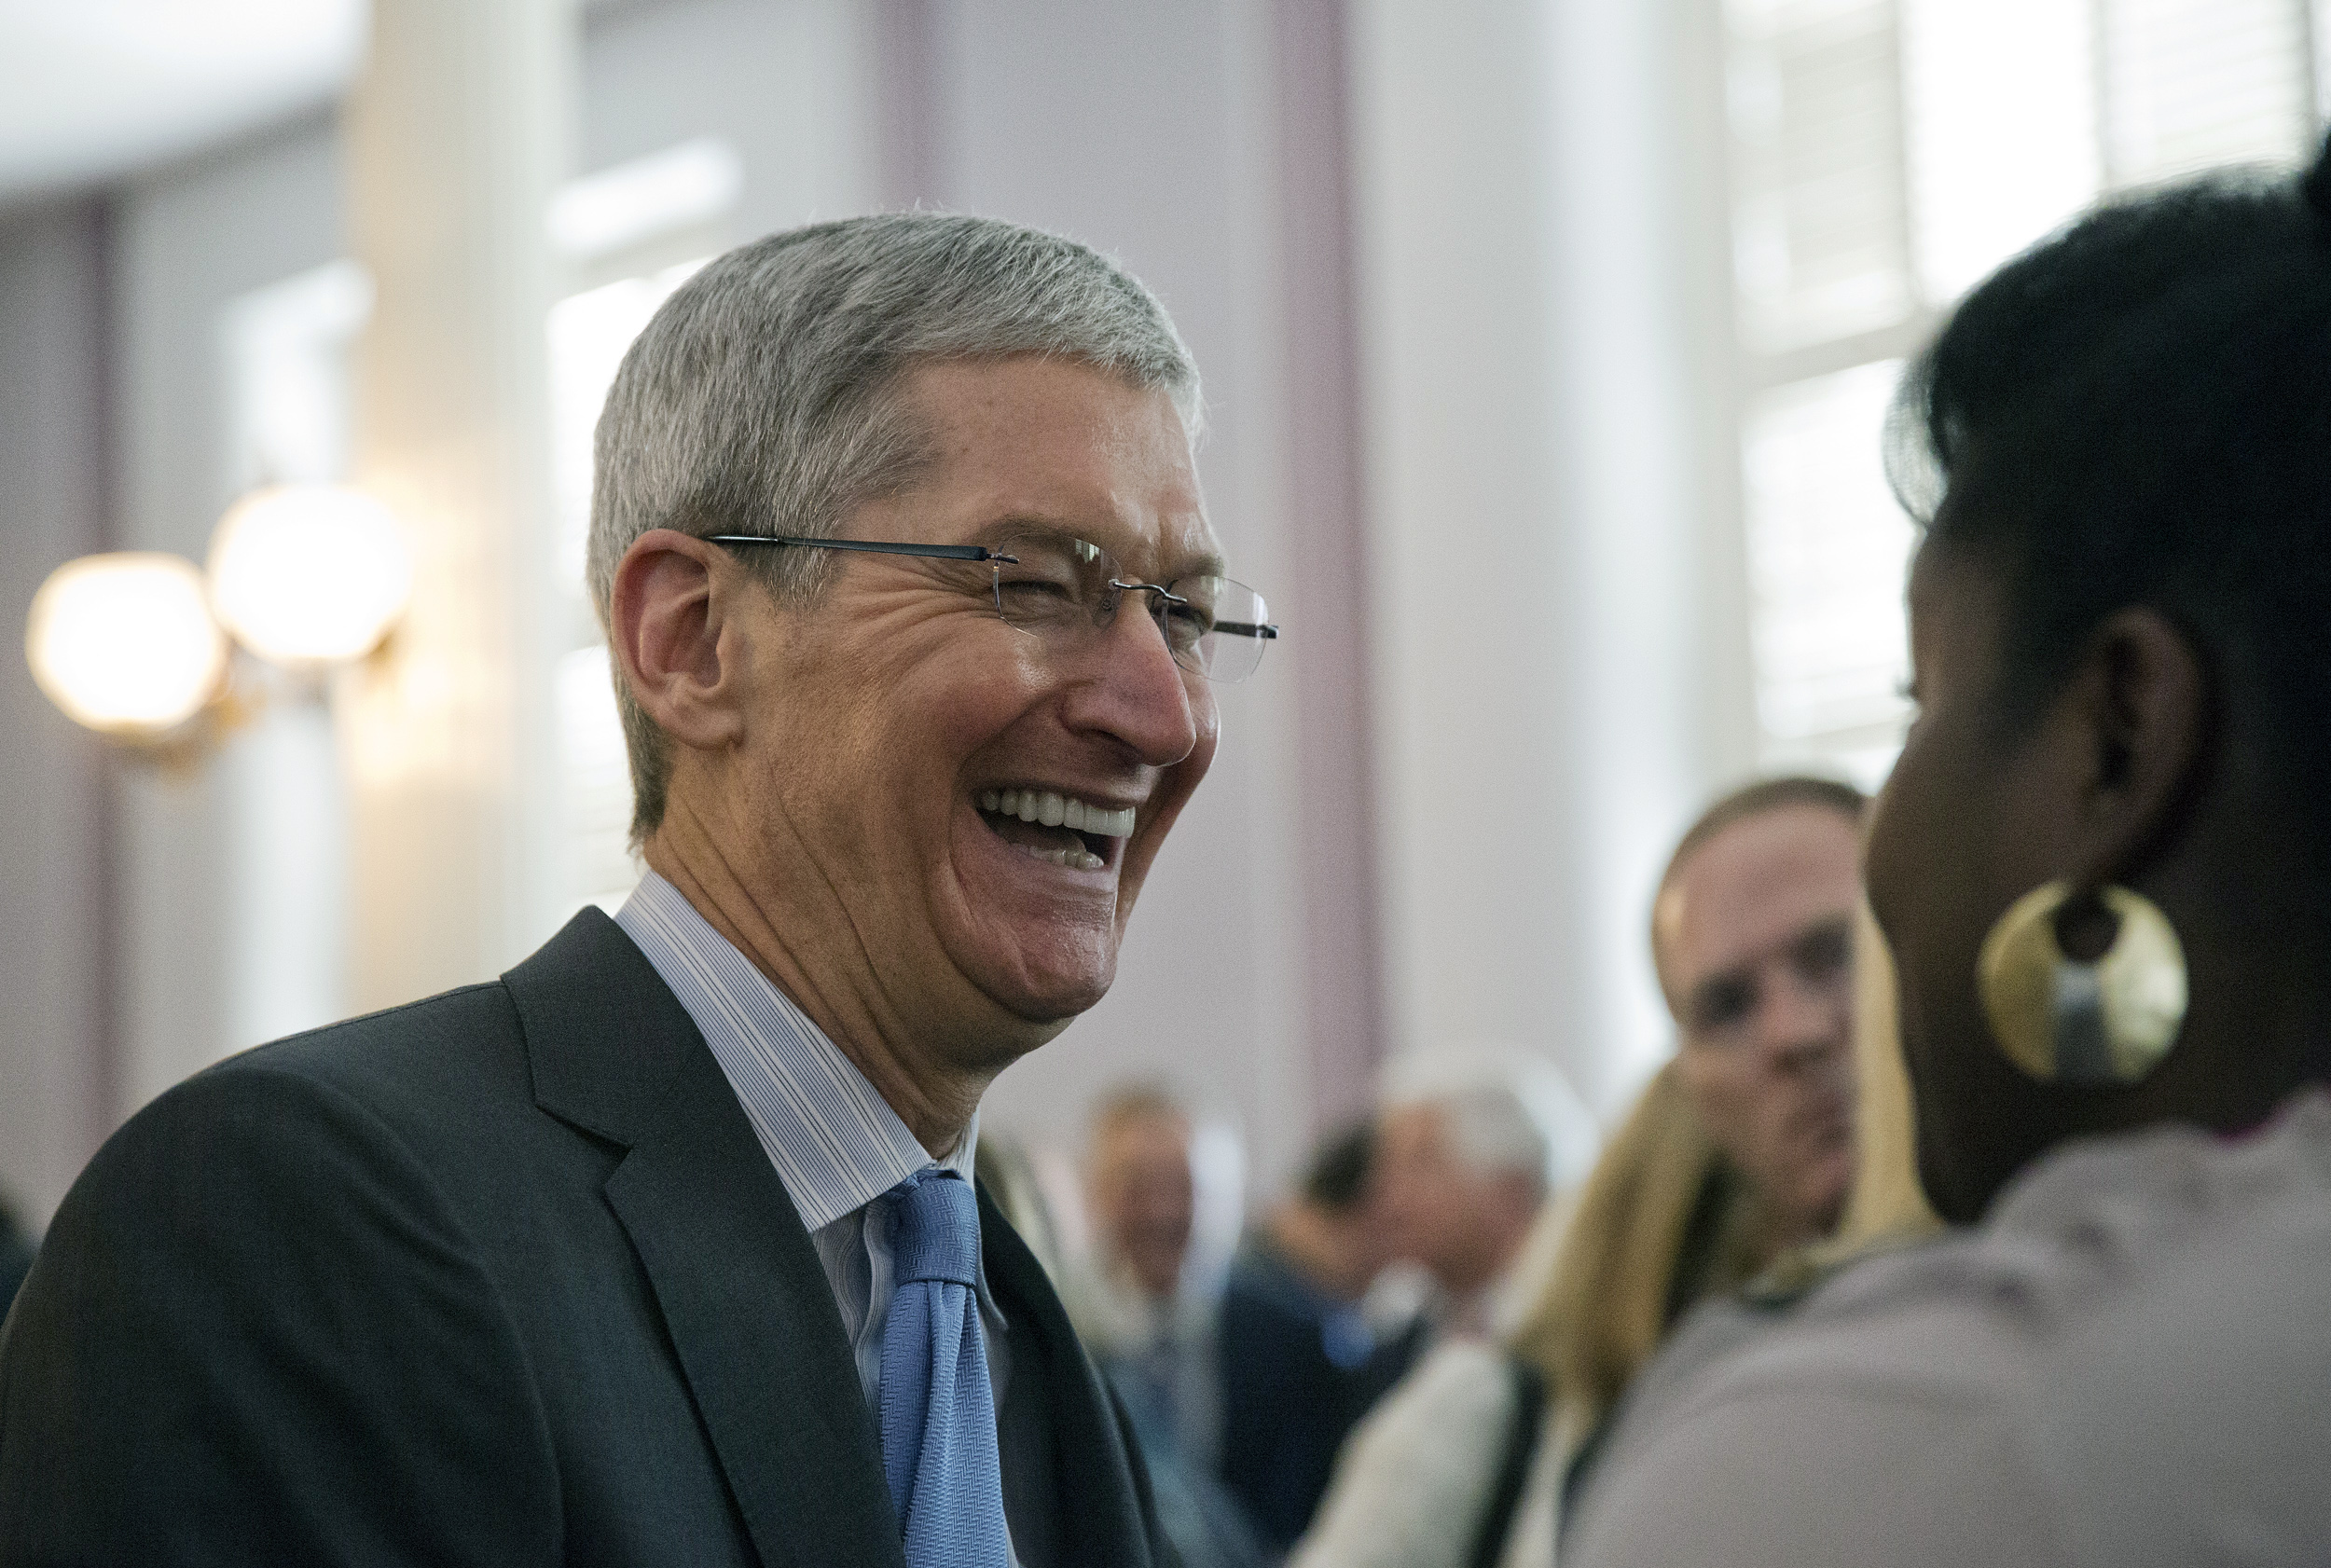 'I'm proud to be gay,' says Apple CEO Tim Cook